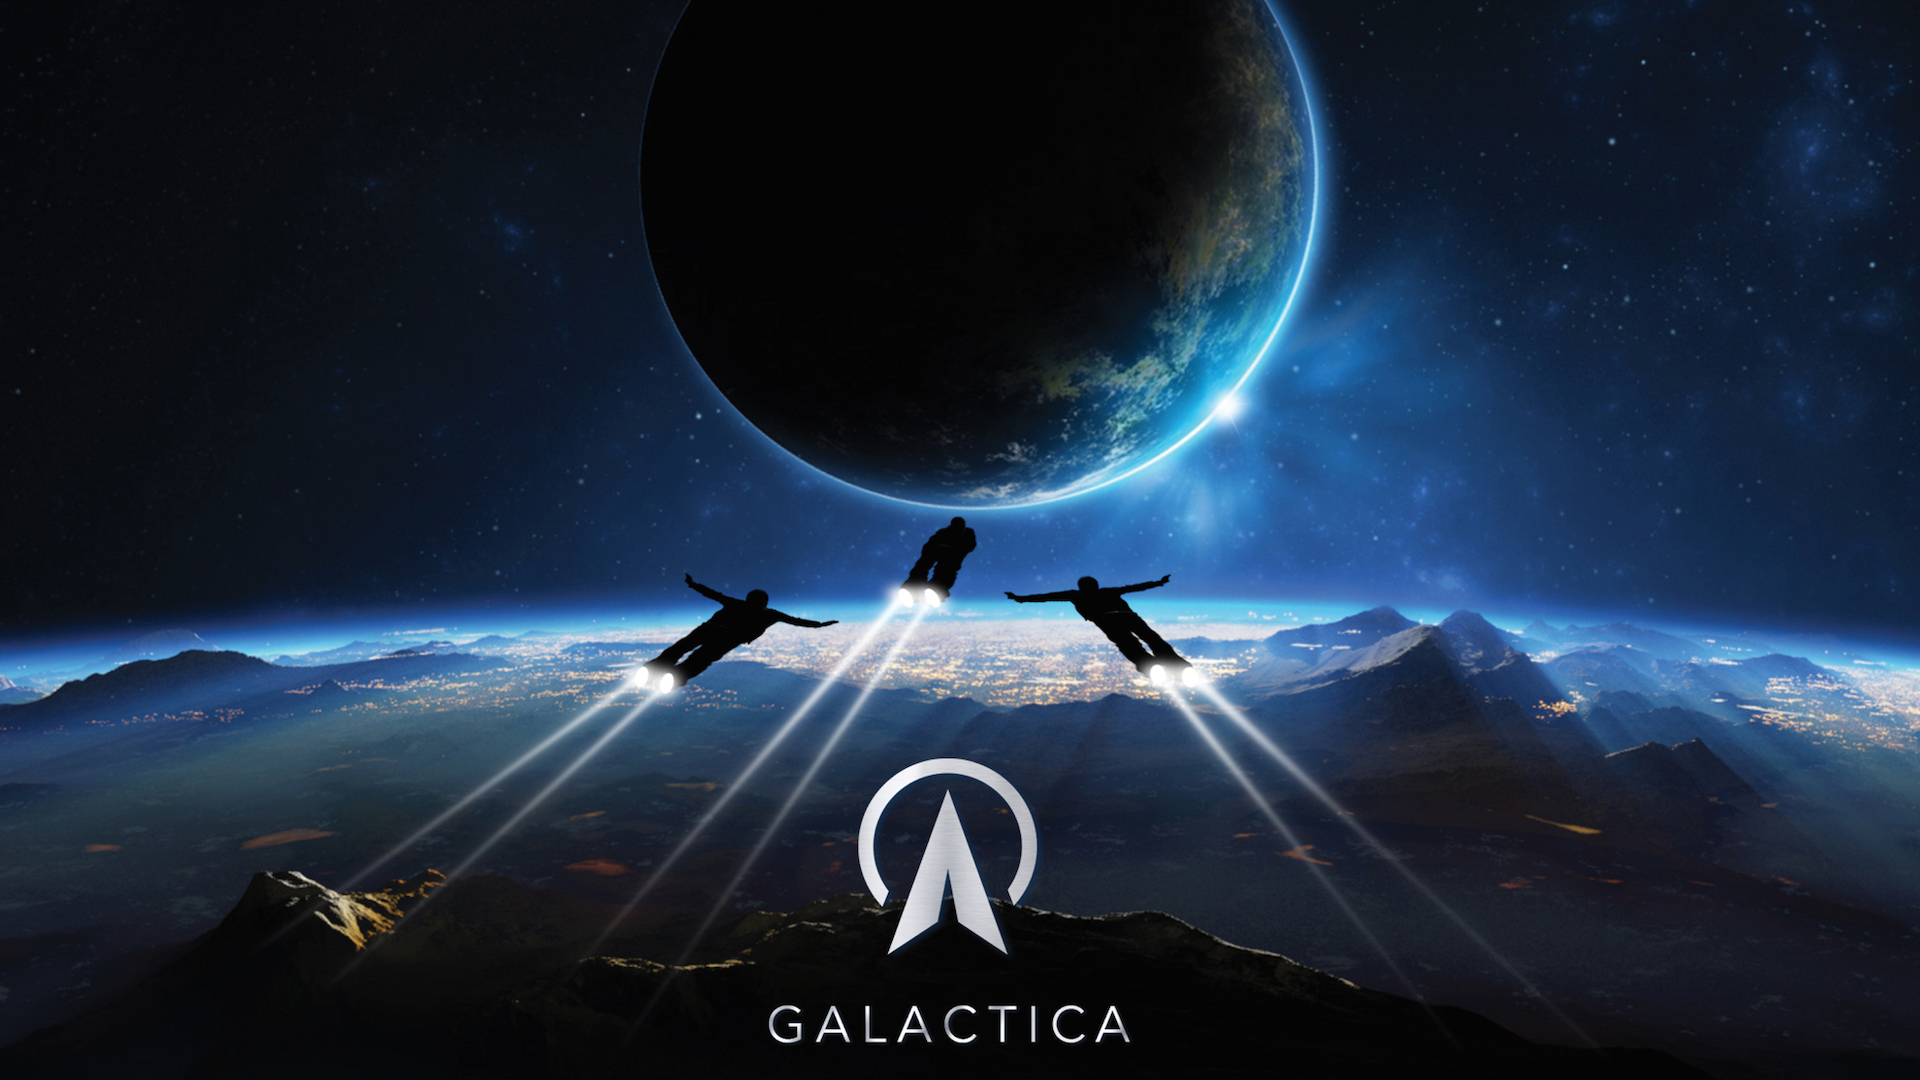 Http www alton towers co uk pages theme park - Galactica_station_concept 500x281 Altontowersresort_galactica_5 500x281